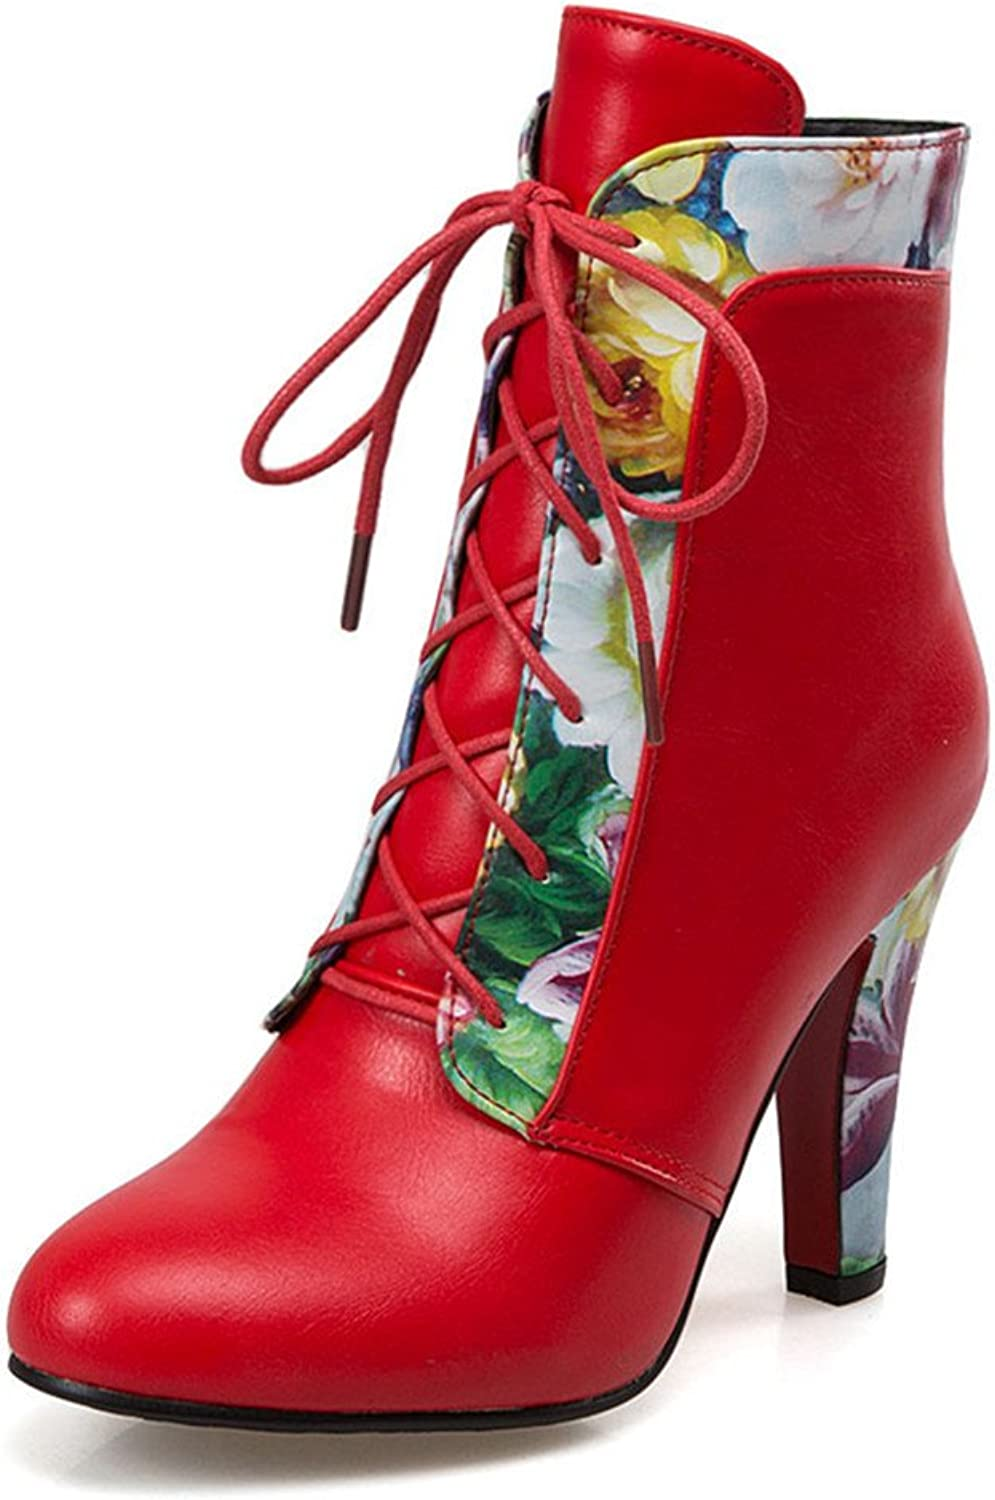 mode mode mode Heel Woherrar Chunky Heel Round Toe Flower Print Lace Up Ankle Booslips  bästa mode